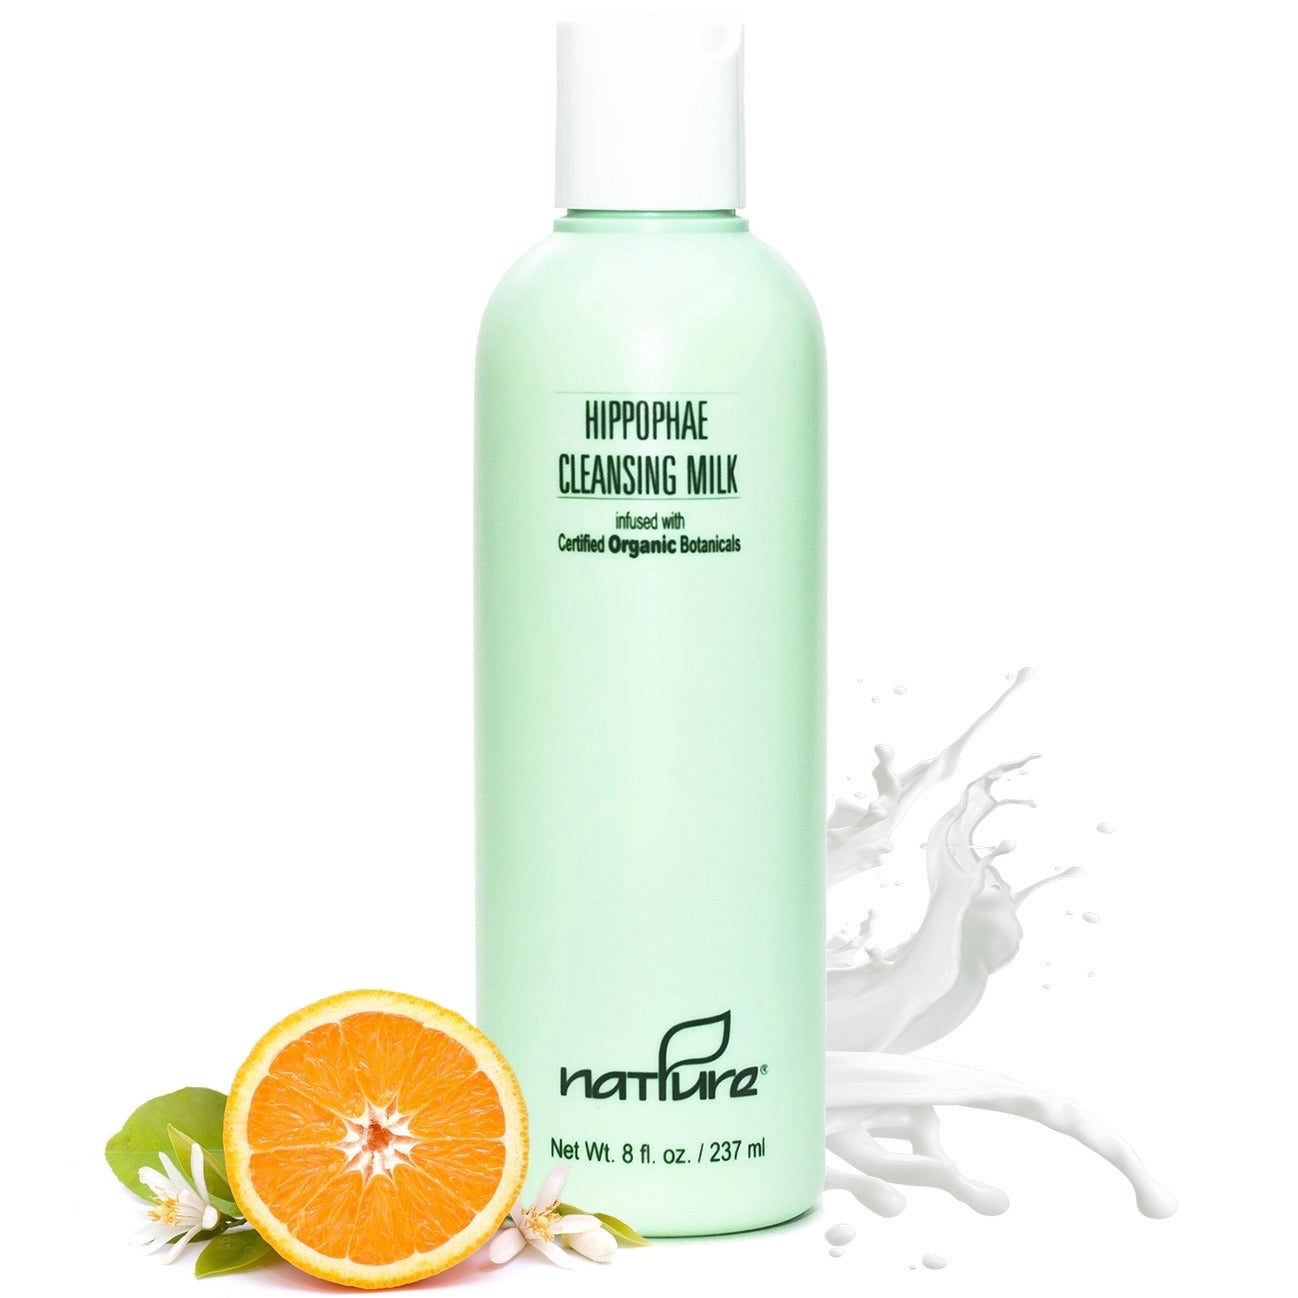 Hippophae Cleansing Milk